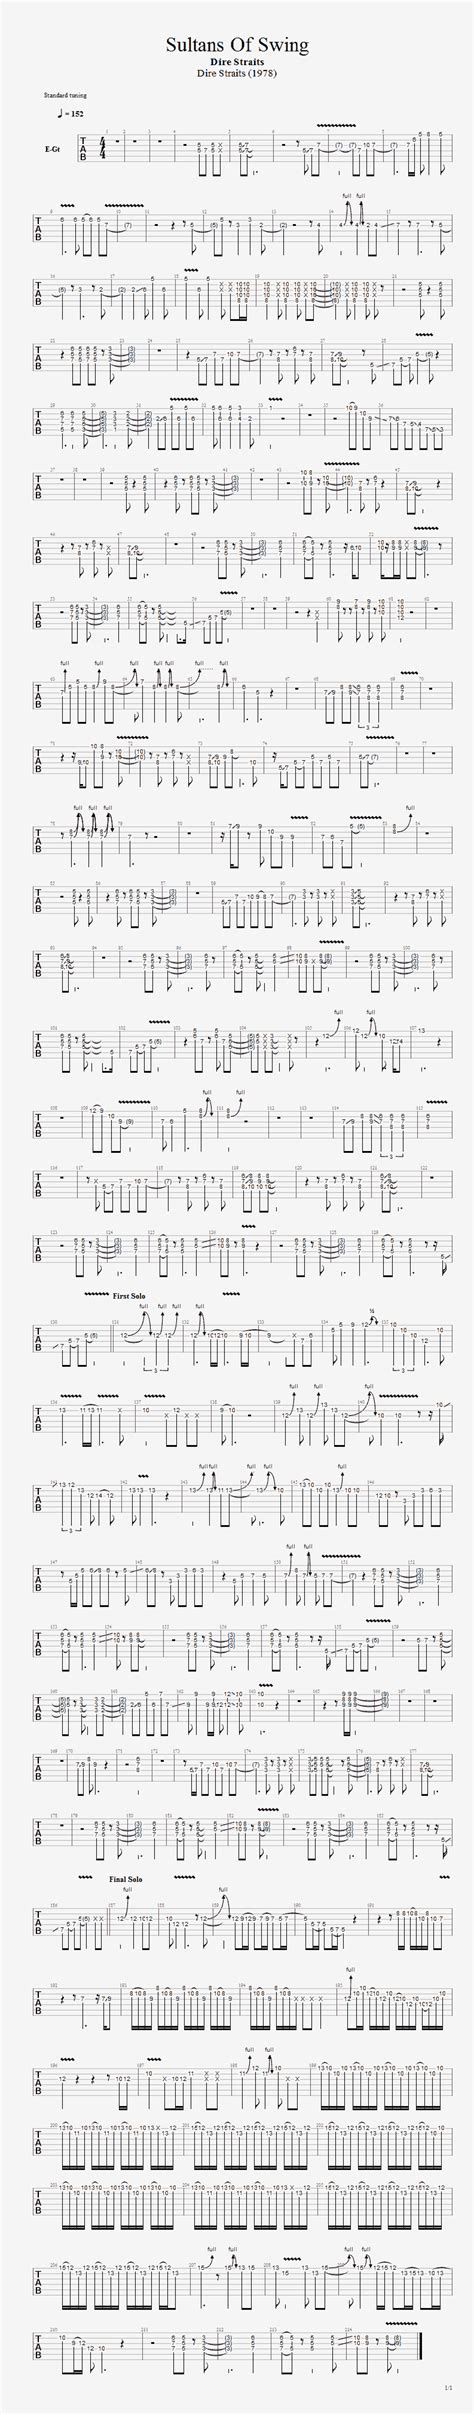 sultans of swing guitar lesson sultans of swing guitar tab guitarnick